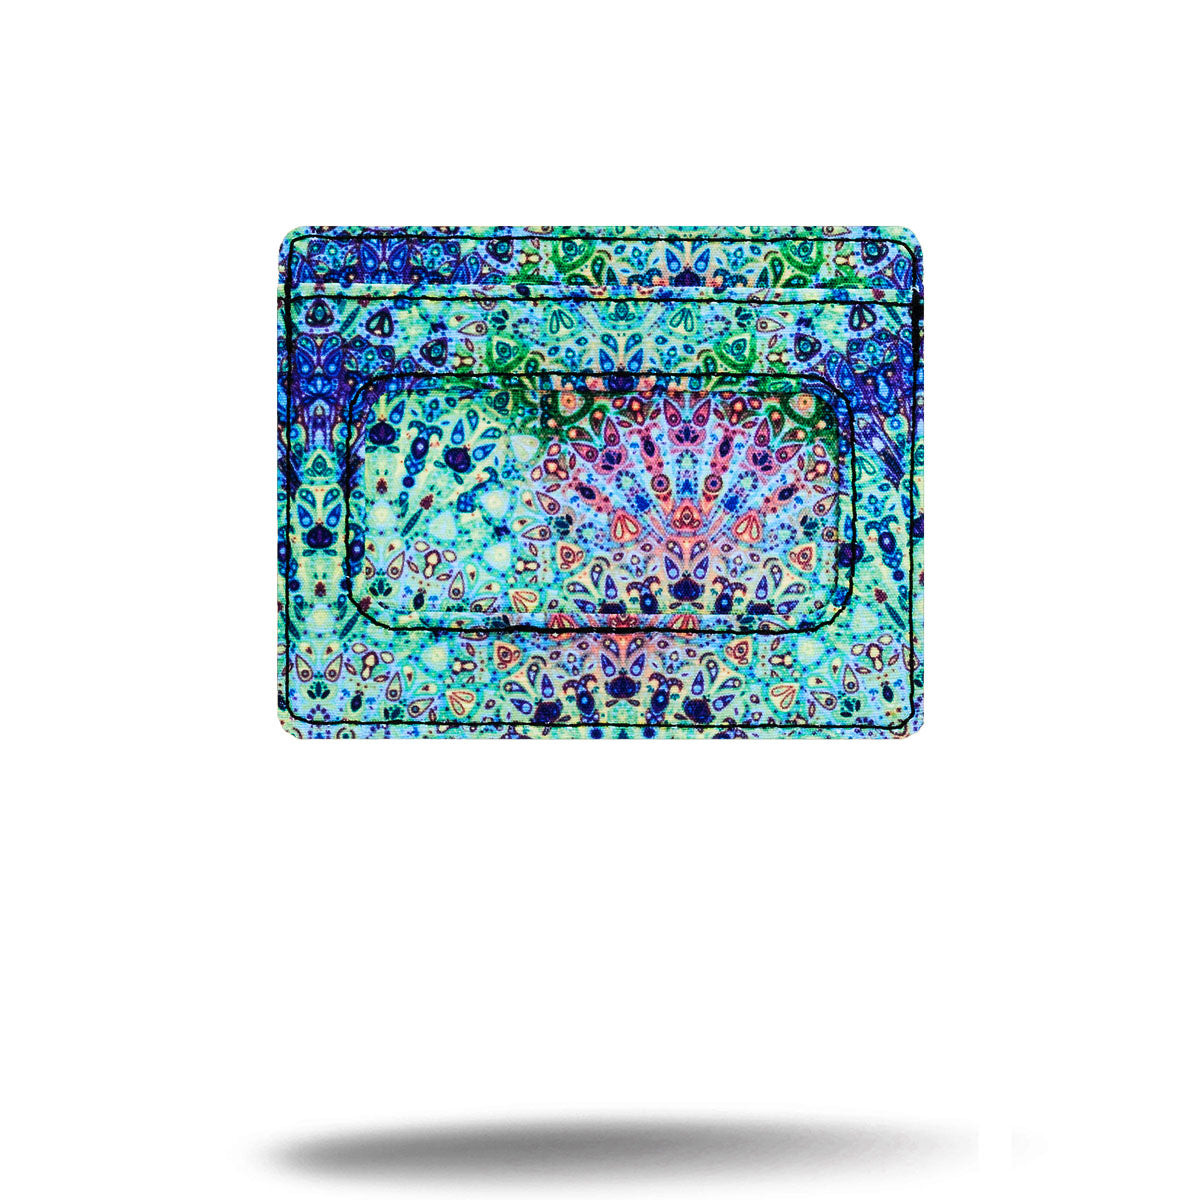 Blue and green Boho printed credit card holder